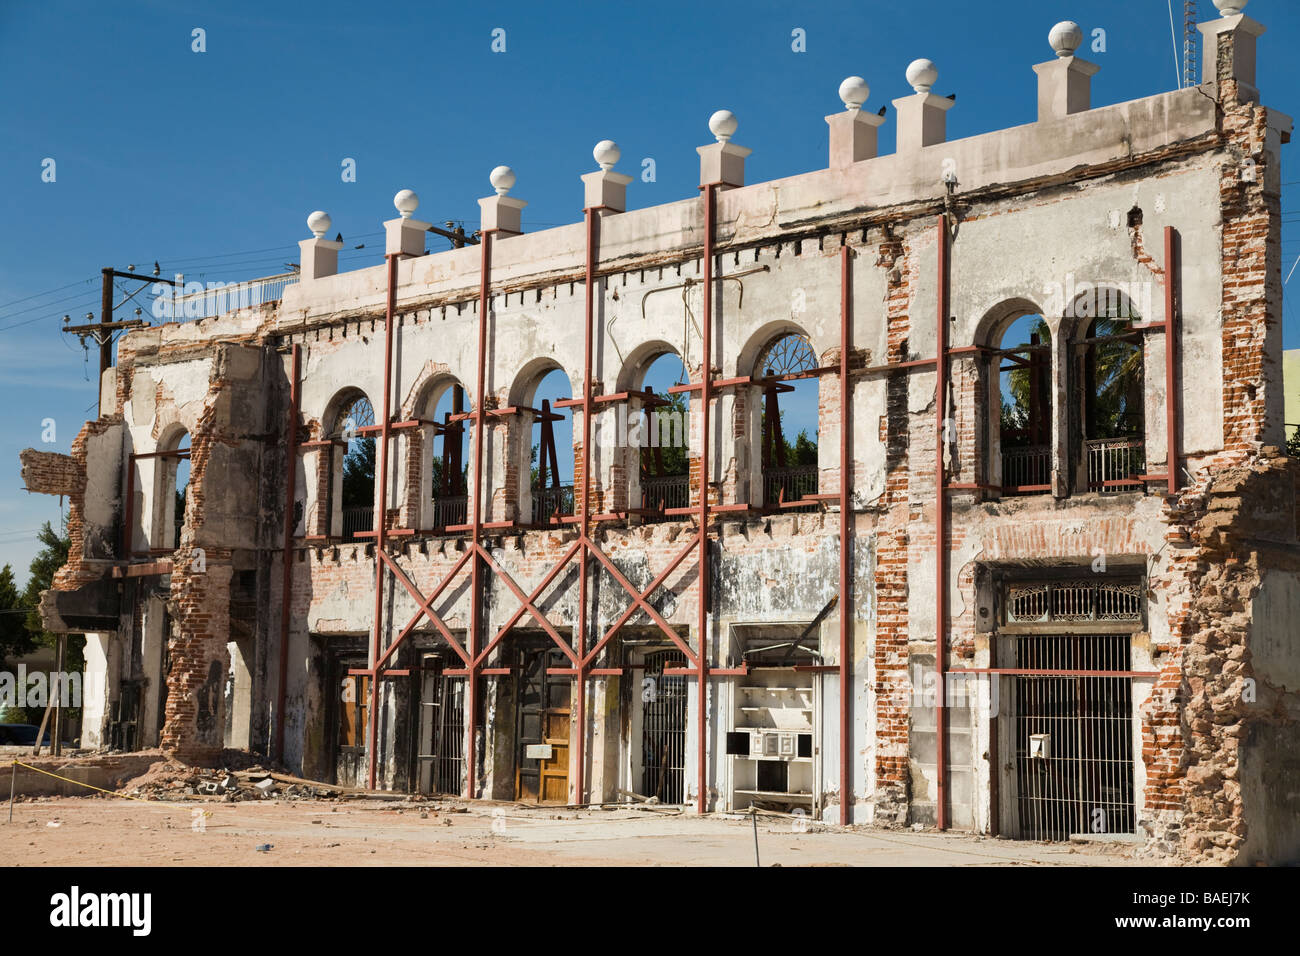 MEXICO La Paz Brick facade of building supported after remainder of structure demolished held in place and supported - Stock Image